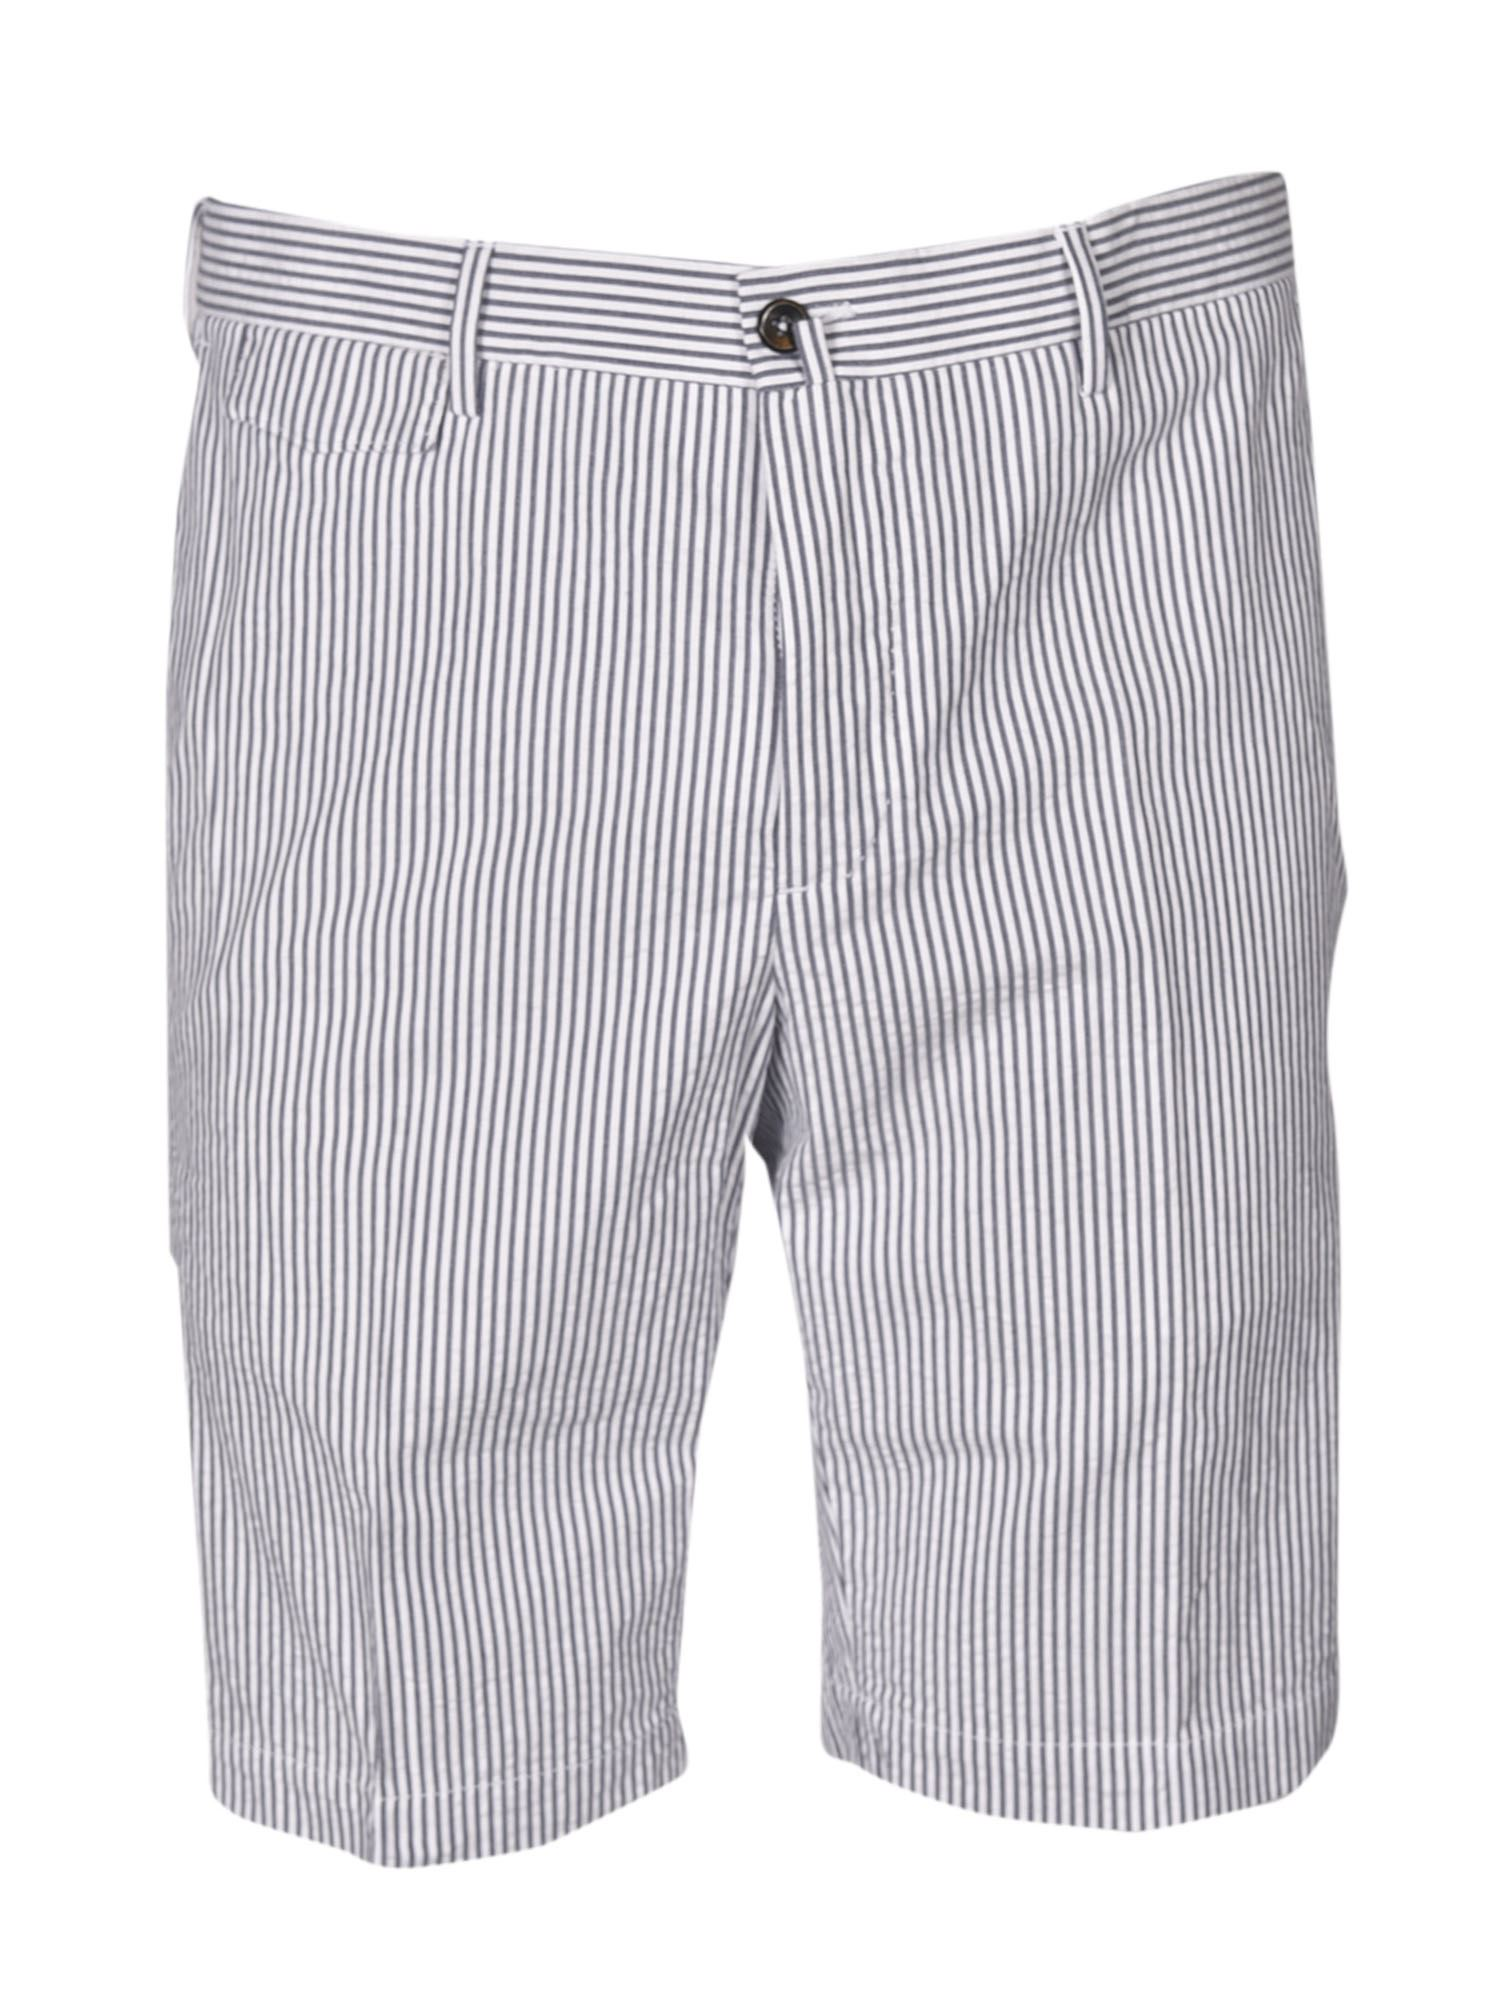 Pt01 Clothing STRIPED BERMUDA SHORTS IN BLUE AND WHITE